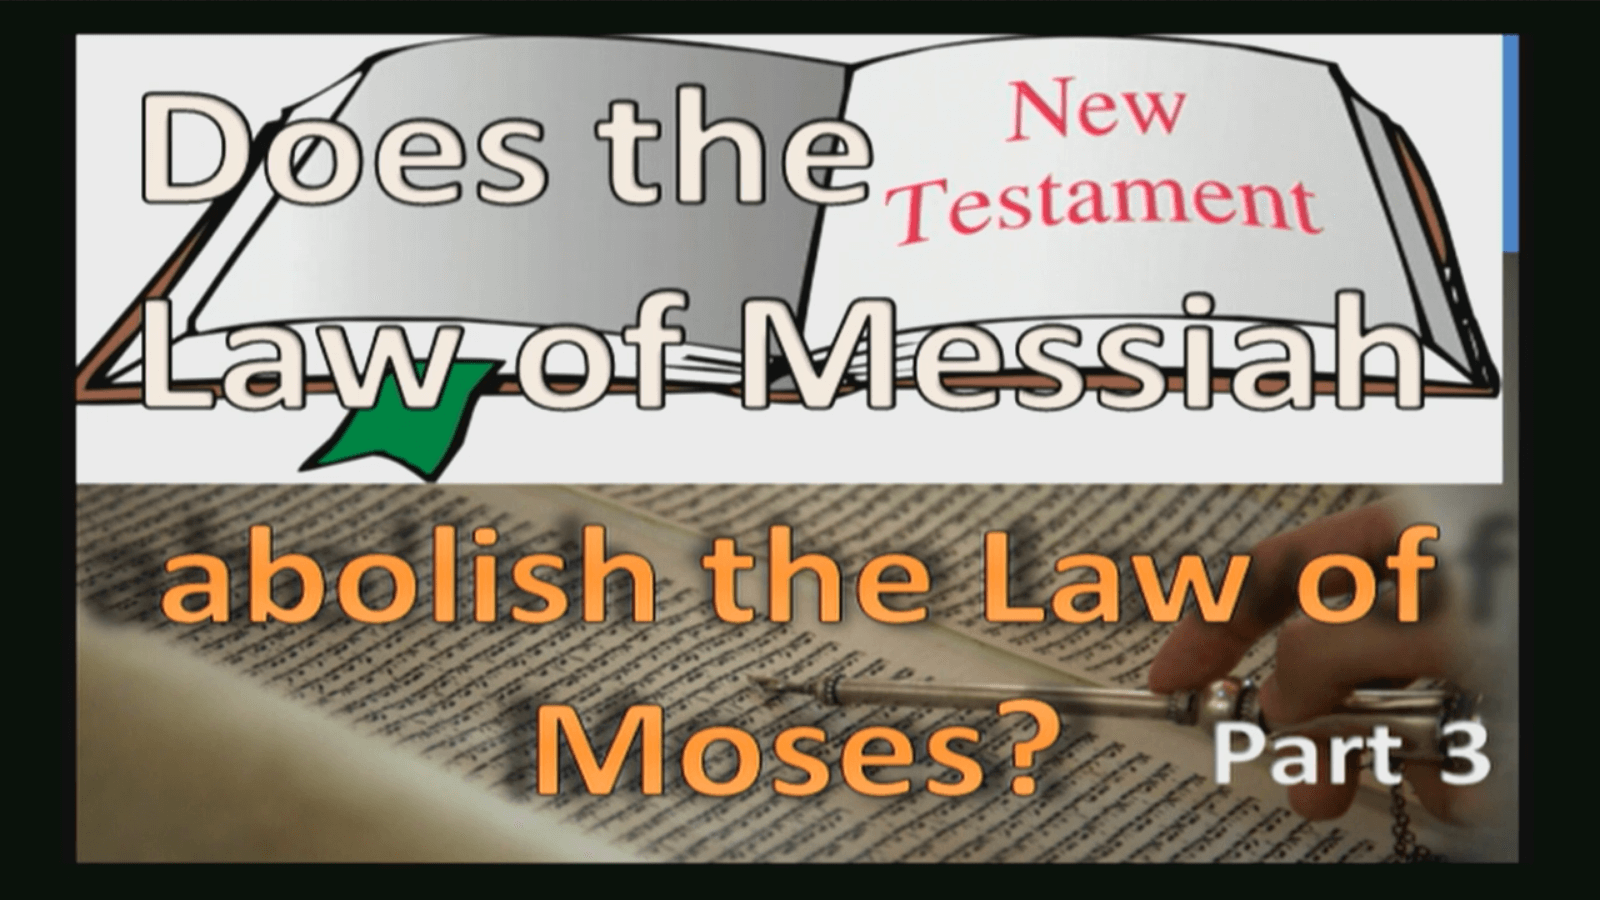 Does the Law of Messiah abolish the Law of Moses? – Part 3